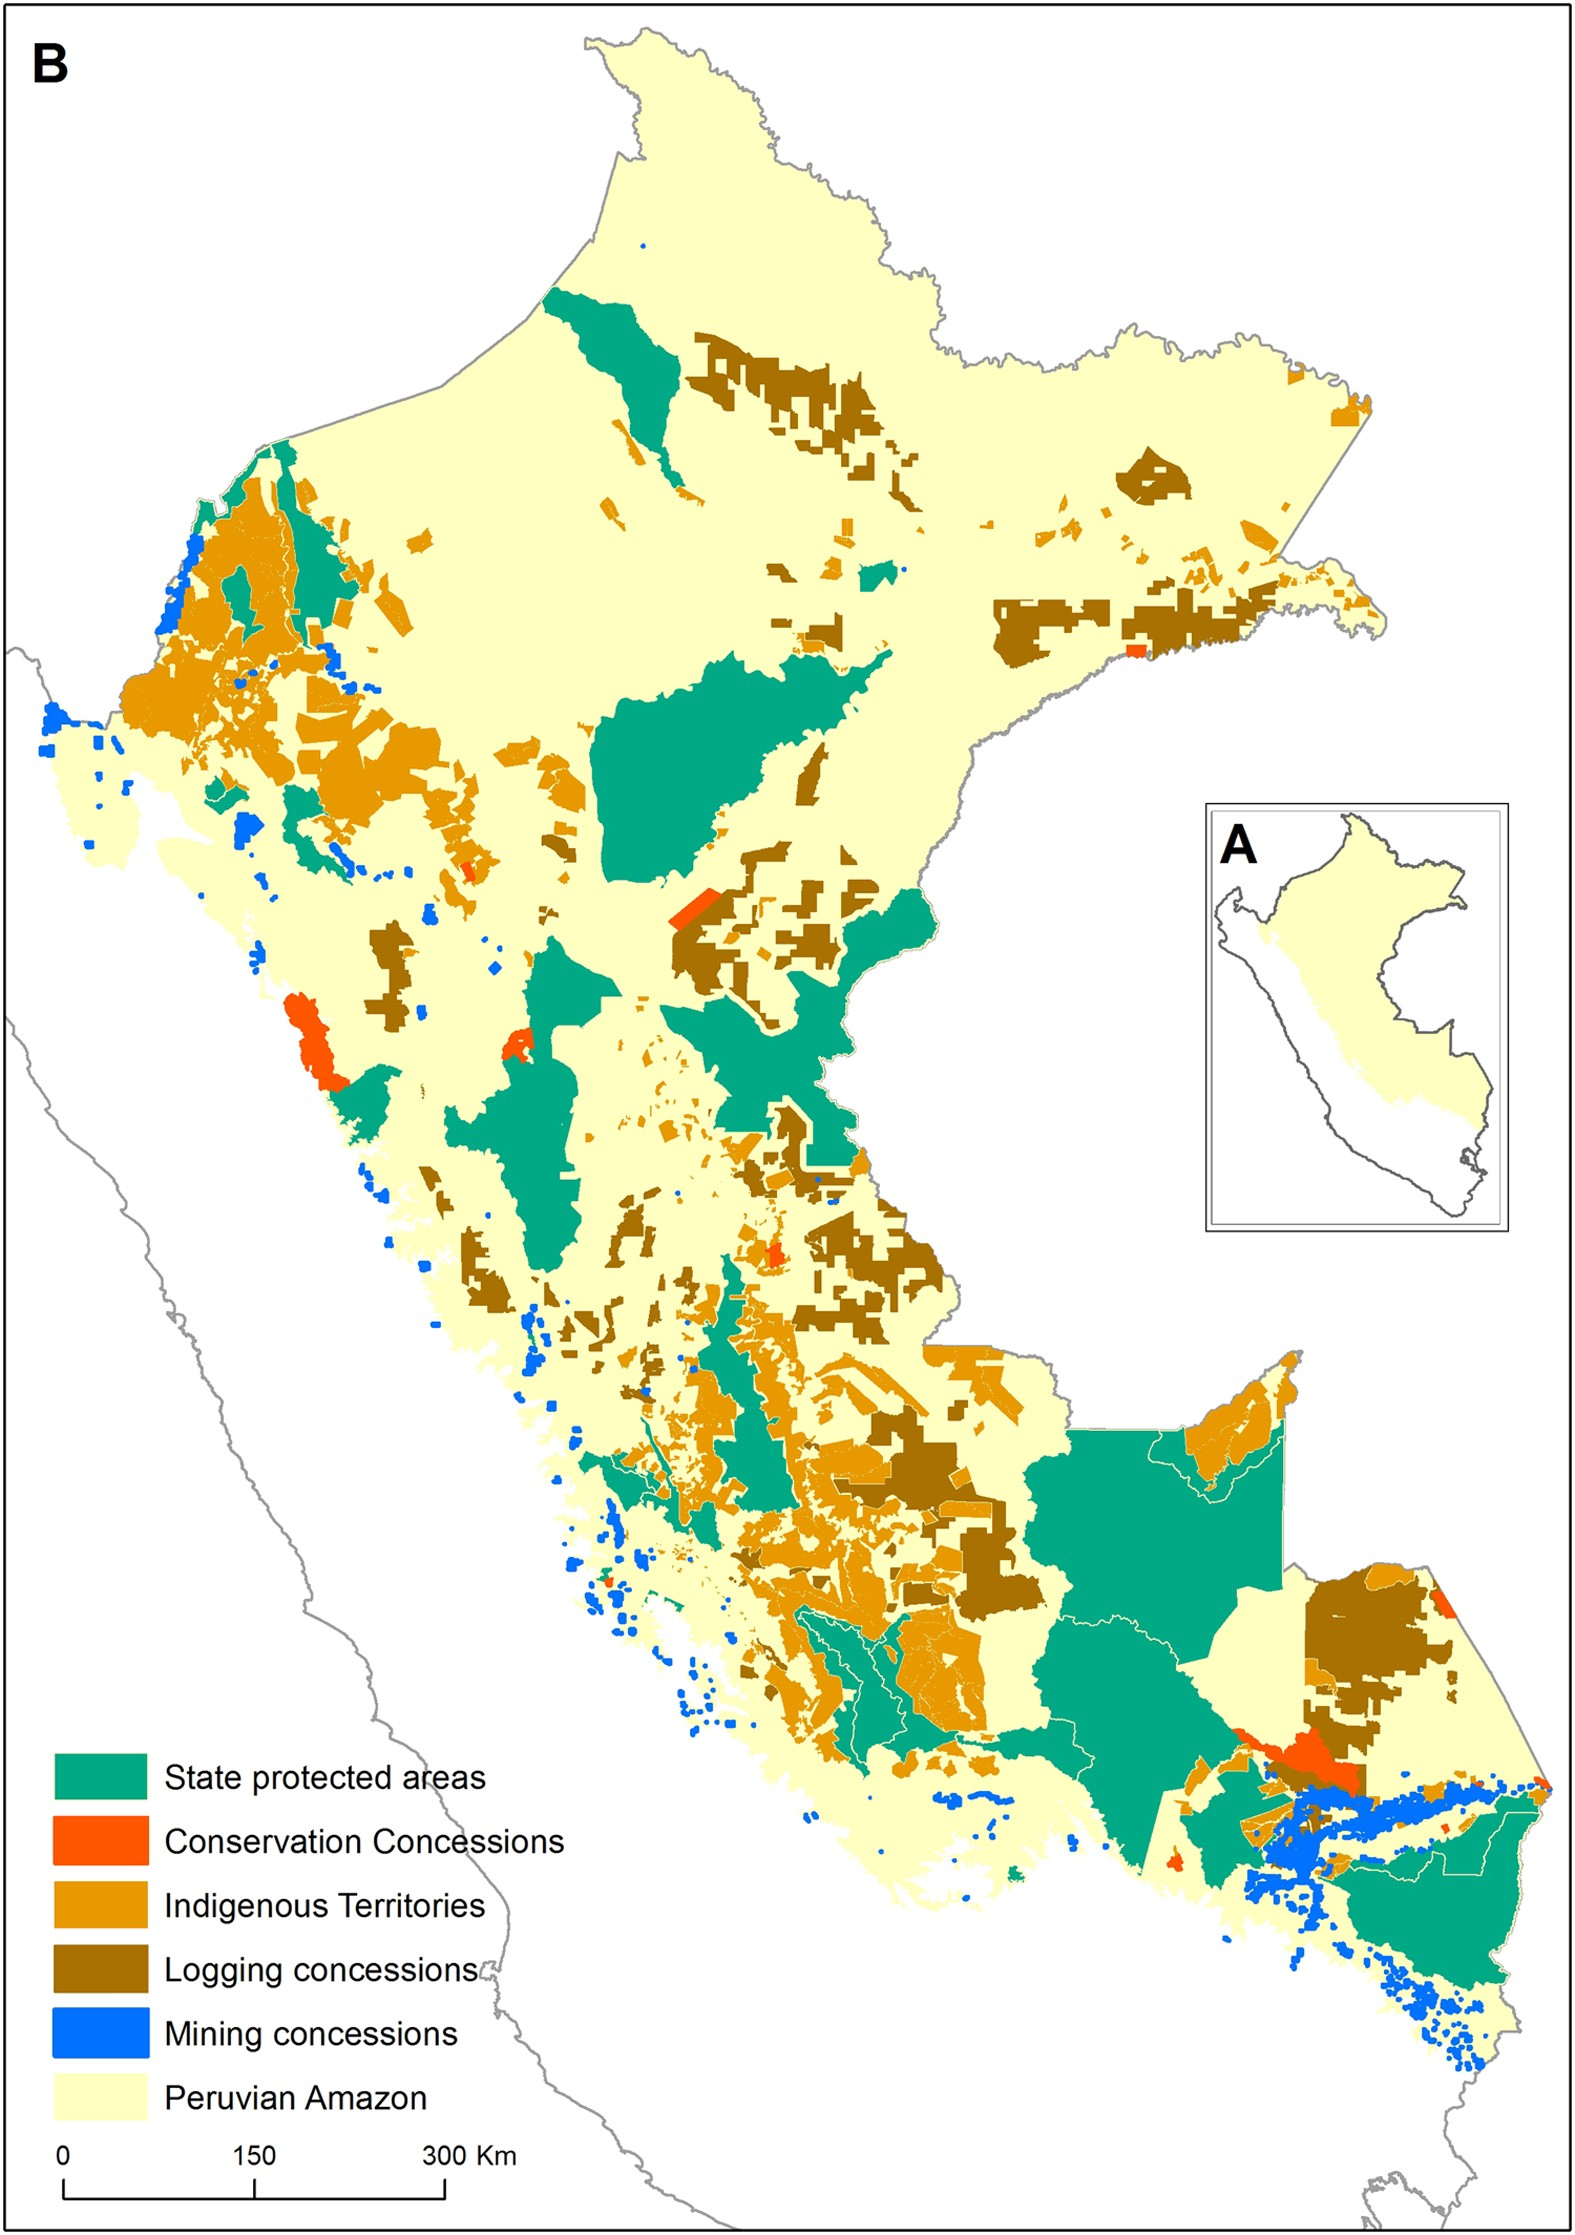 Conservation performance of different conservation governance ... on ethiopia indigenous people, south american indigenous people, tahiti indigenous people, myanmar indigenous people, vietnam indigenous people, chile indigenous people, guatemala indigenous people, maghreb indigenous people, great britain indigenous people, canada indigenous people, bolivia indigenous people, iraq indigenous people, central american indigenous people, indonesia indigenous people, united states indigenous people, cayman islands indigenous people, indigenous tribes of new people, russia indigenous people, italy indigenous people, equatorial guinea indigenous people,